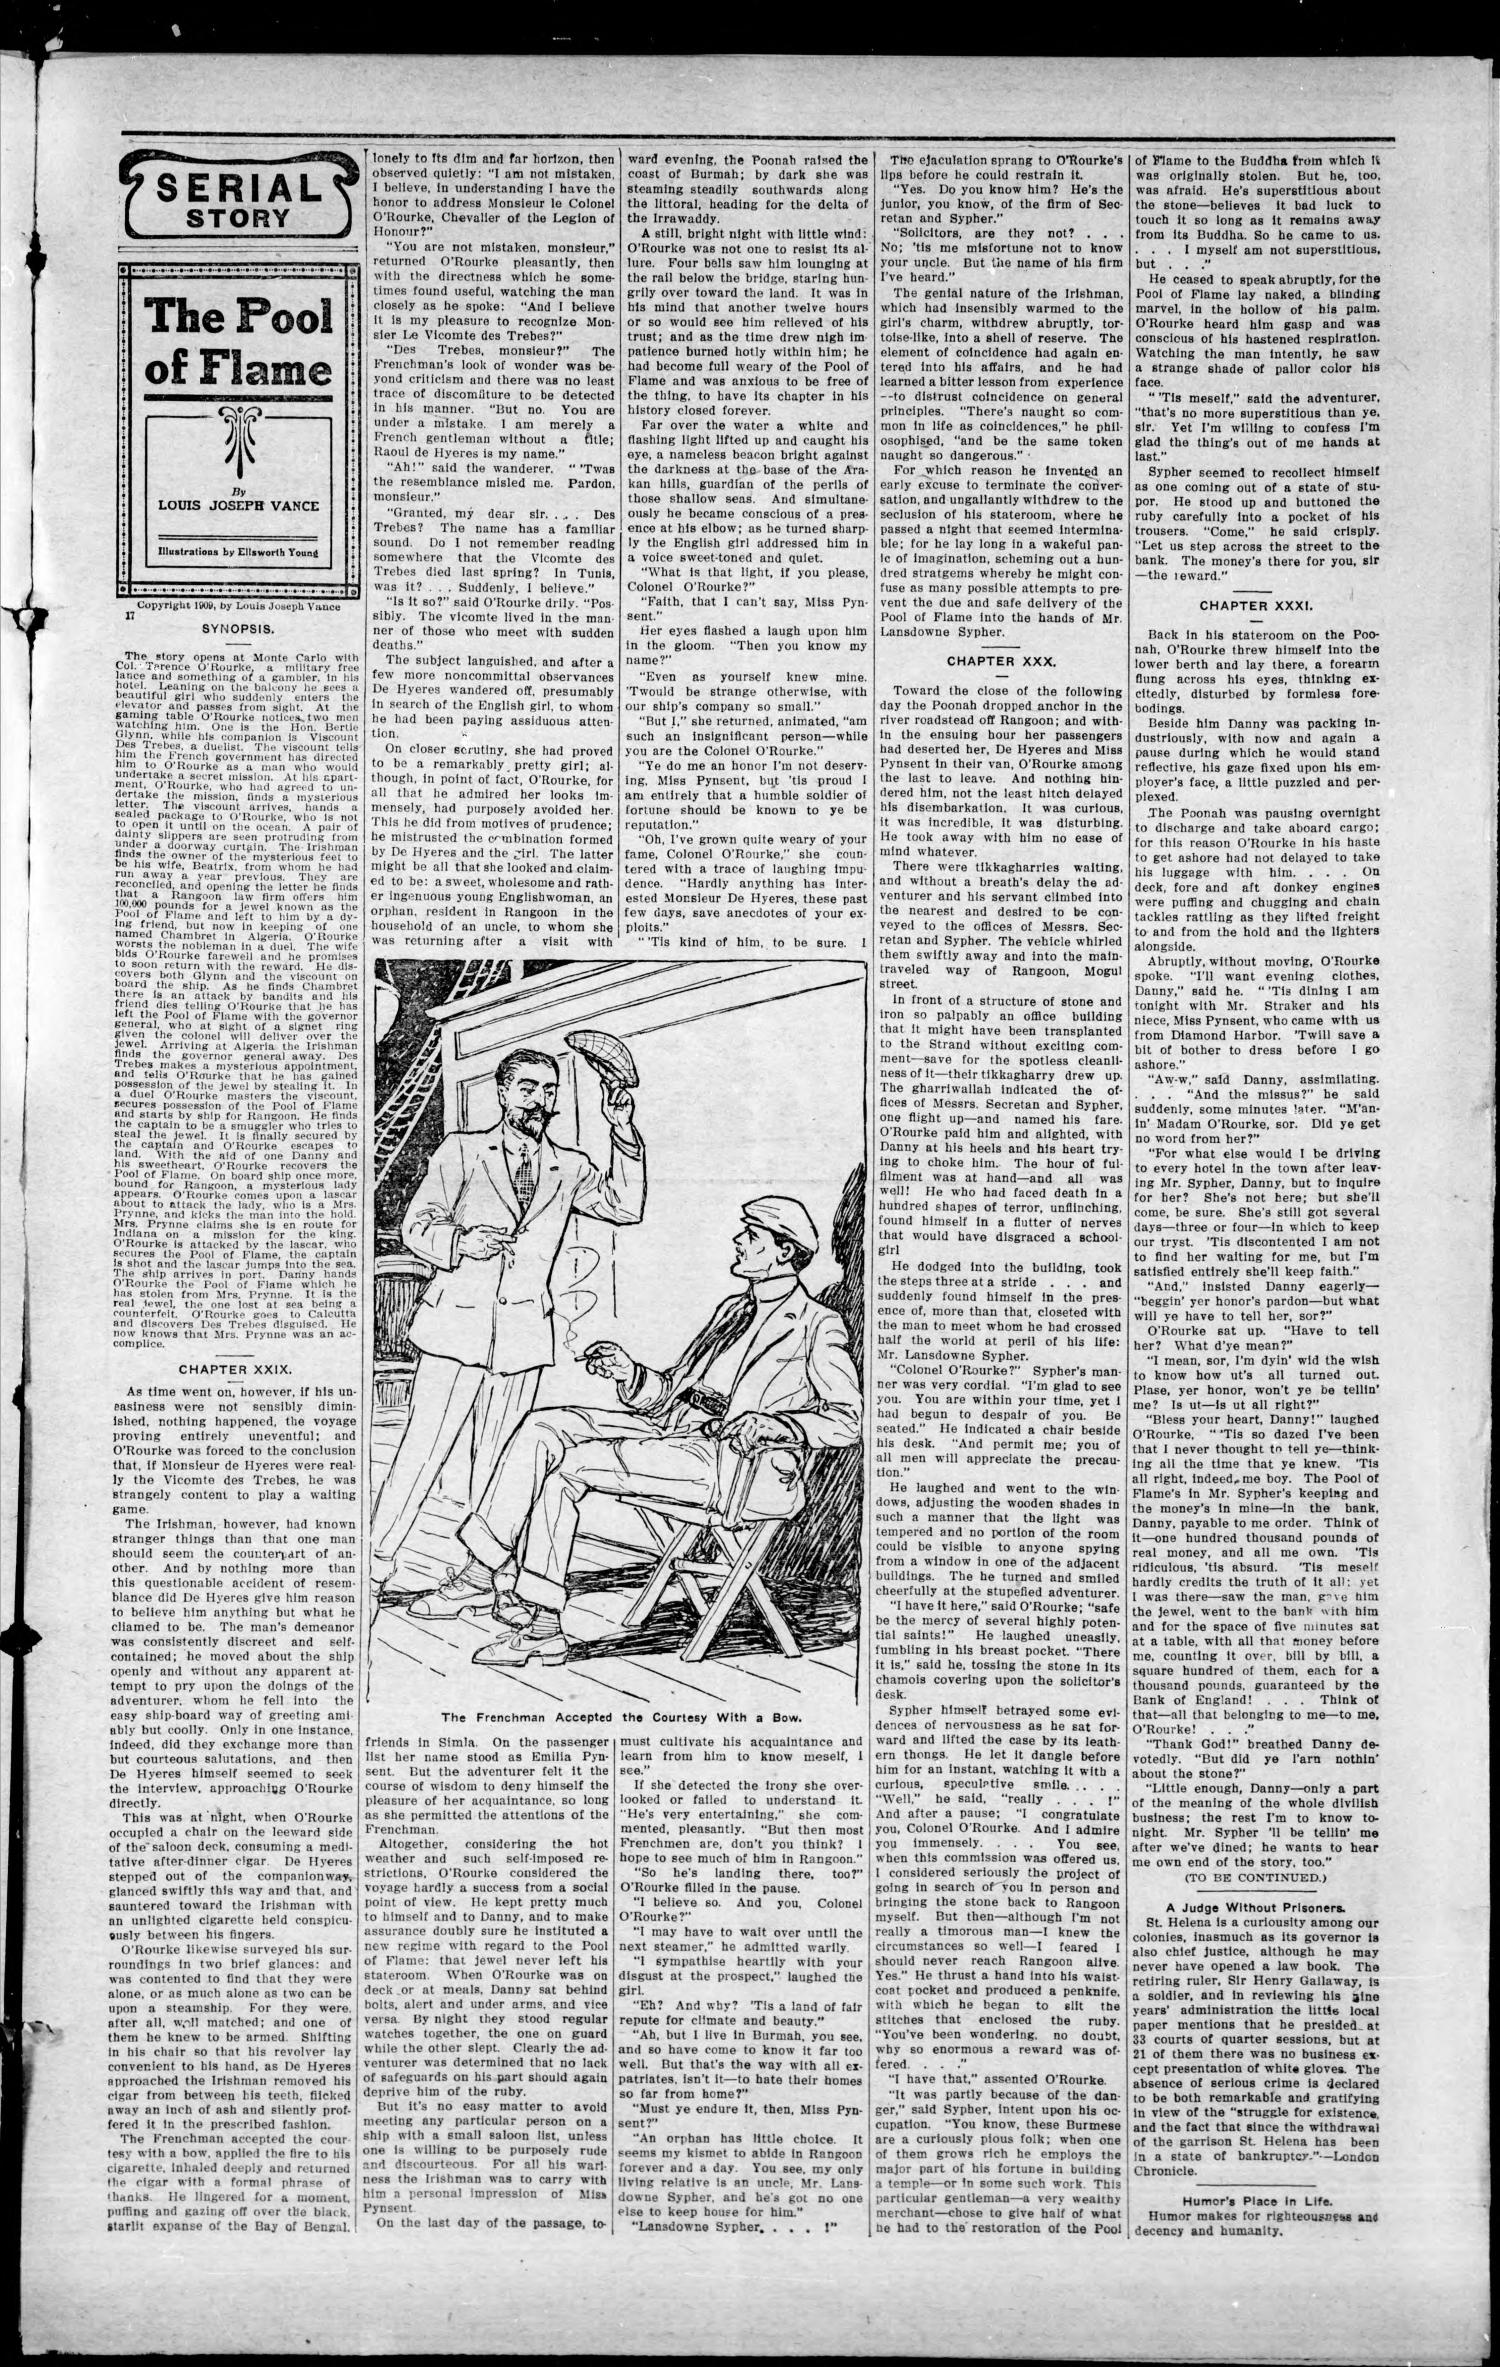 The Foraker Sun. (Foraker, Okla.), Vol. 7, No. 10, Ed. 1 Friday, June 28, 1912                                                                                                      [Sequence #]: 3 of 8